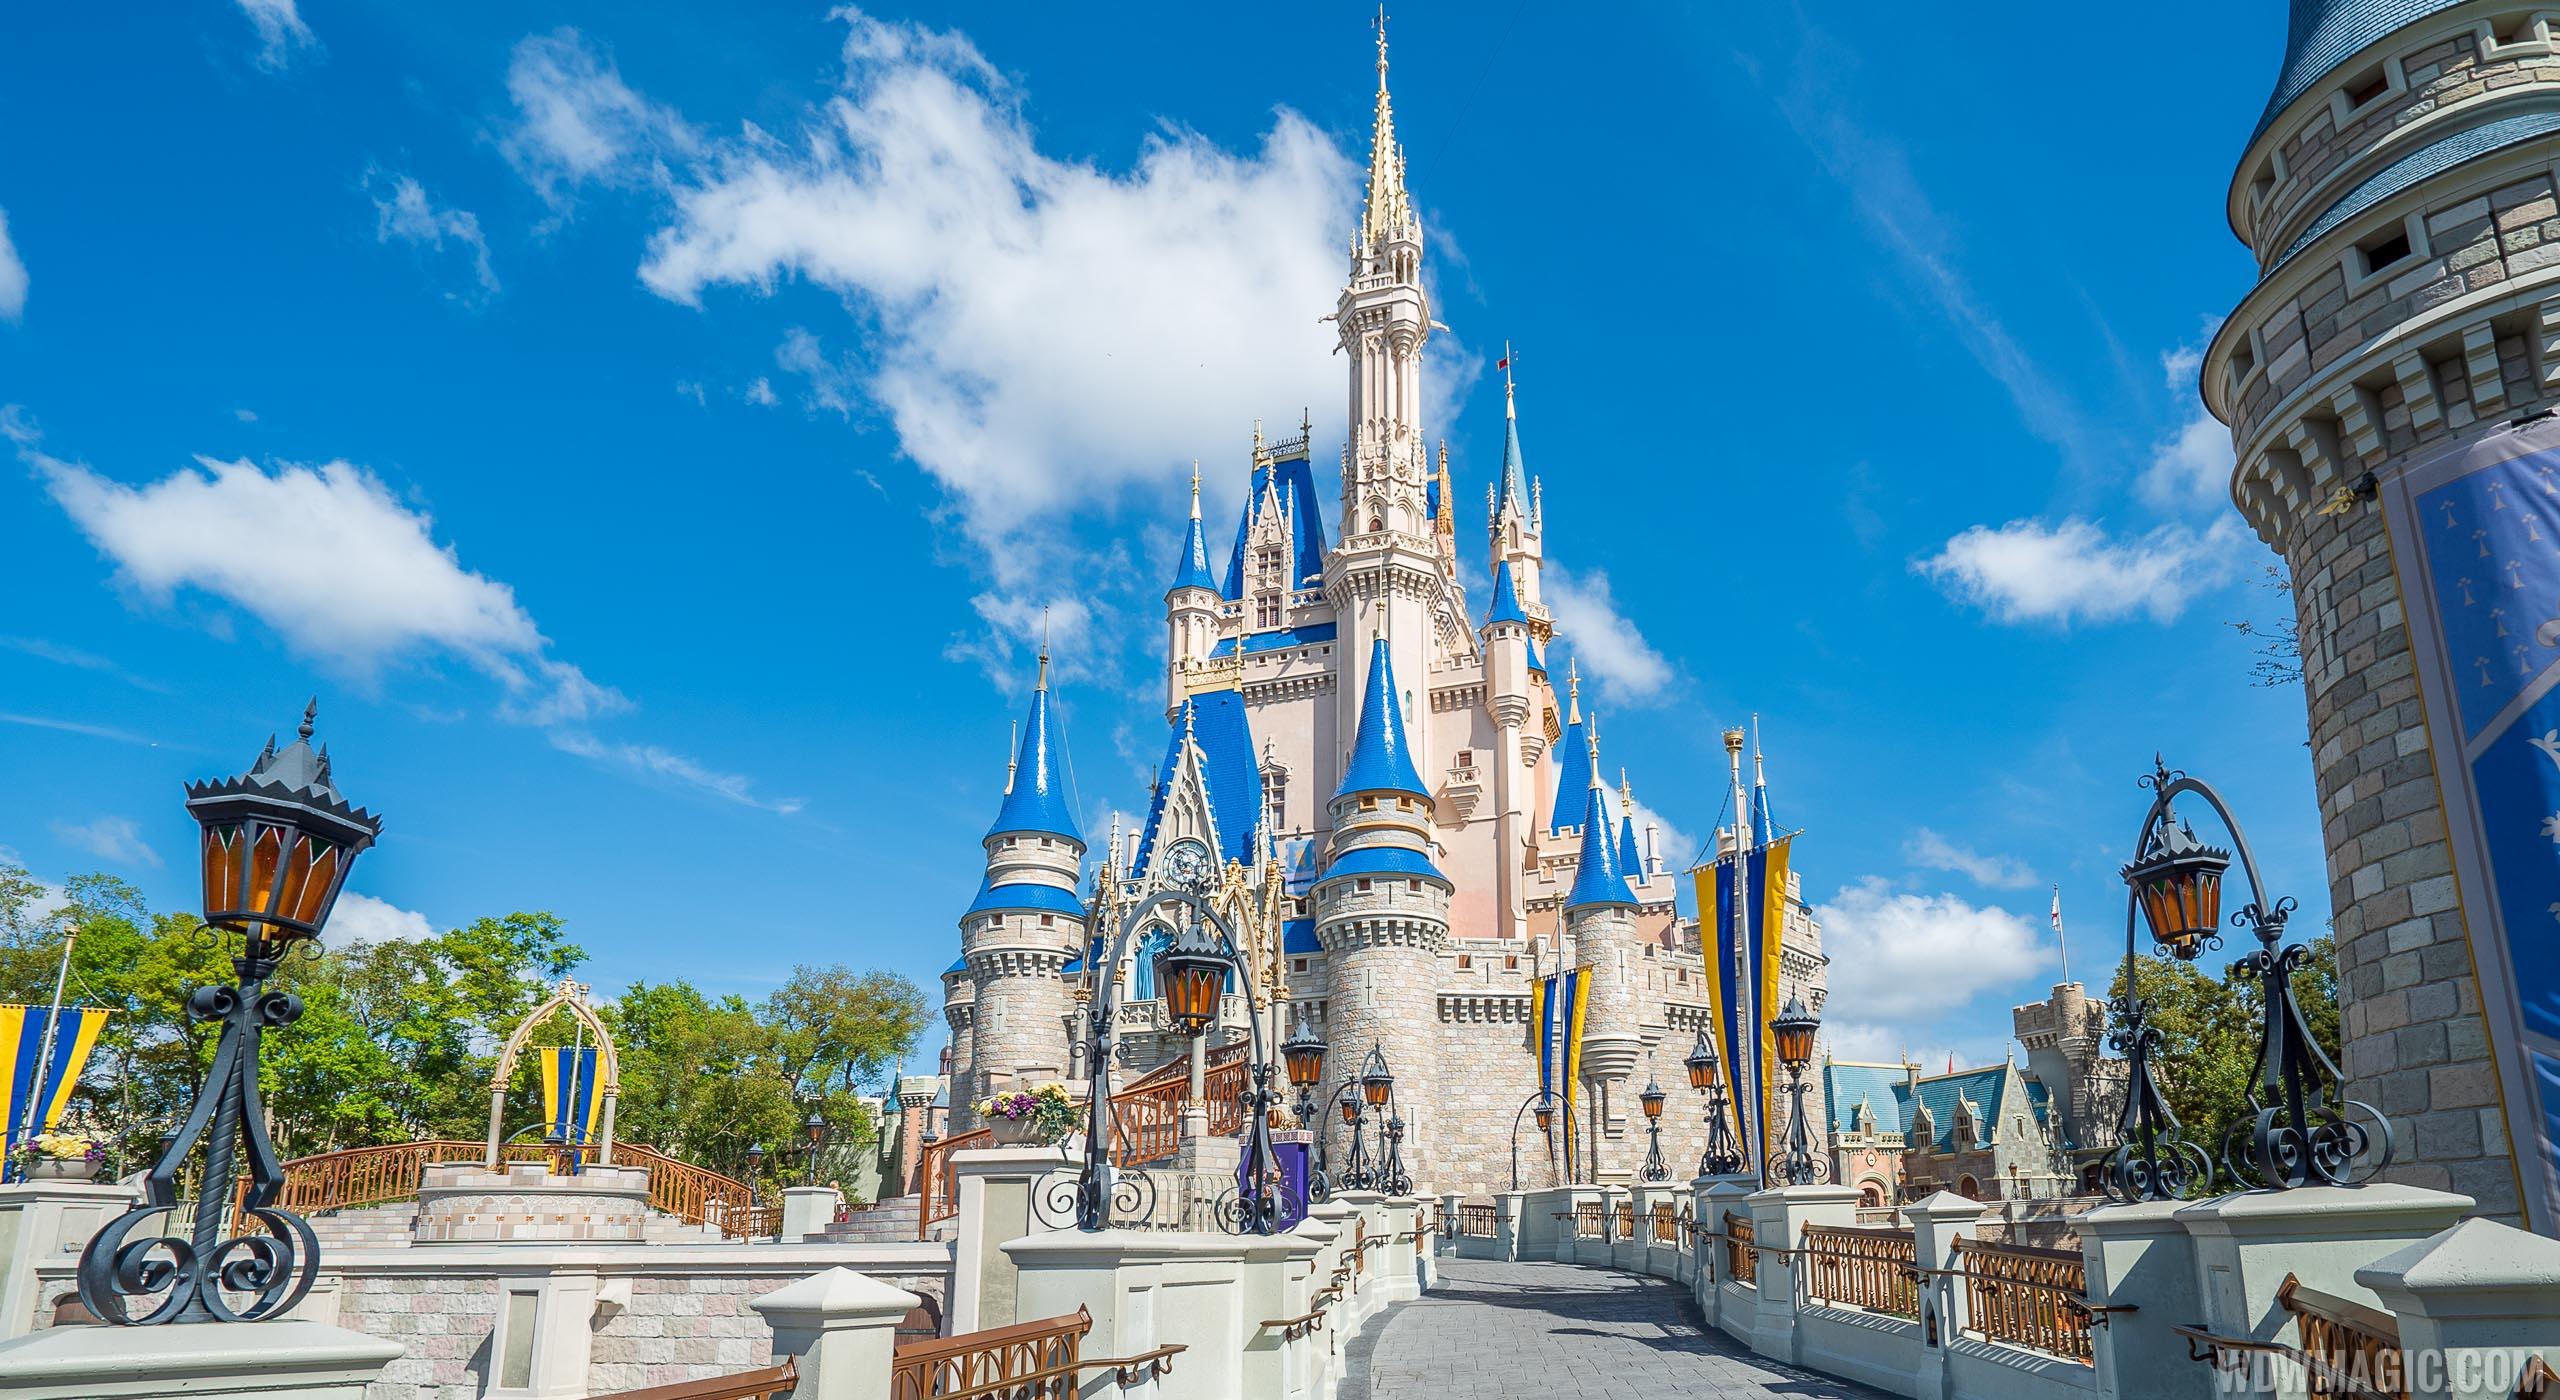 Walt Disney World theme parks will begin a phased reopening on July 11